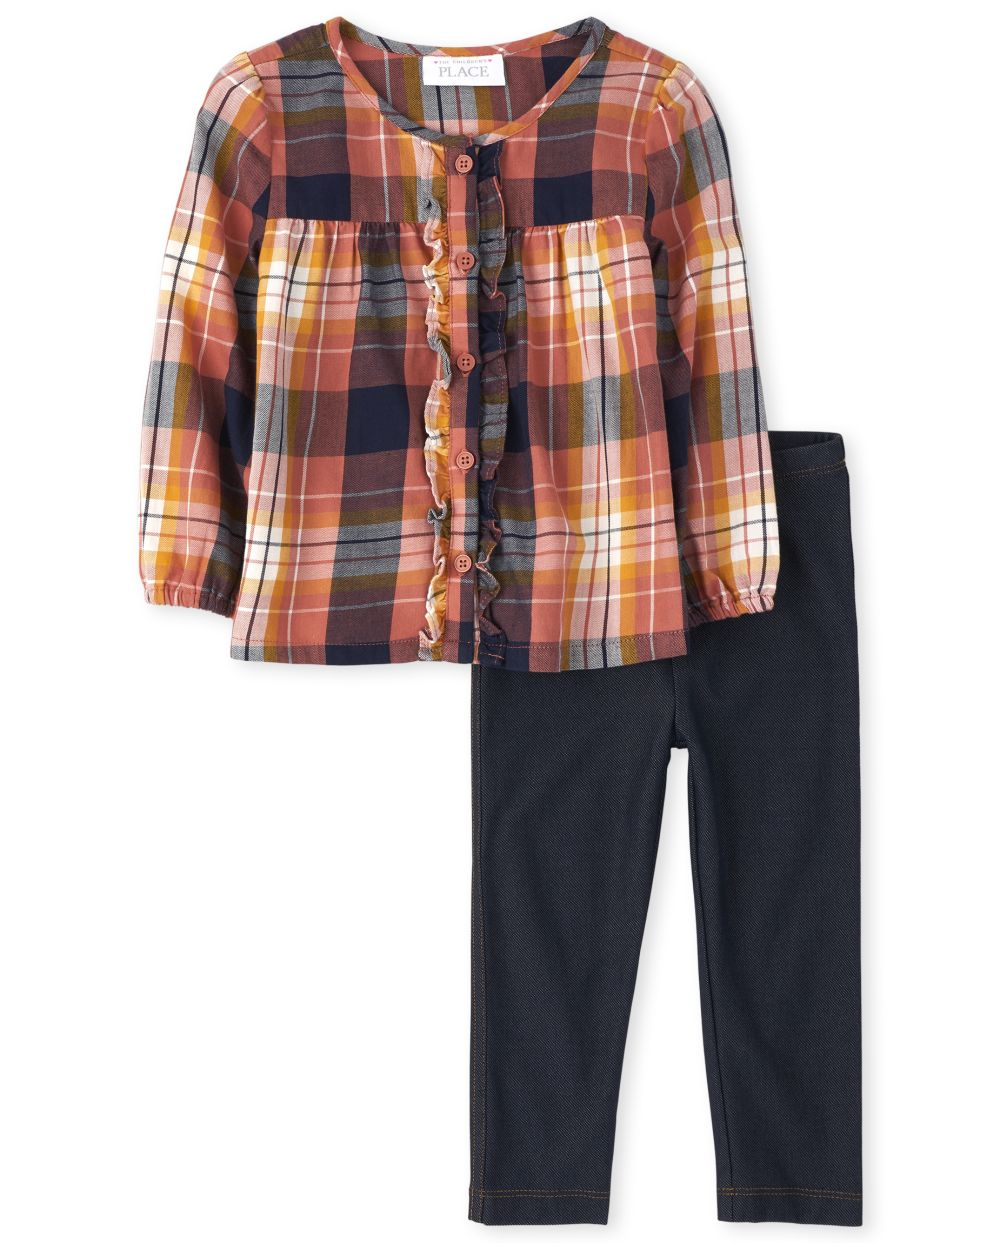 Toddler Girls Mommy And Me Plaid Matching Outfit Set